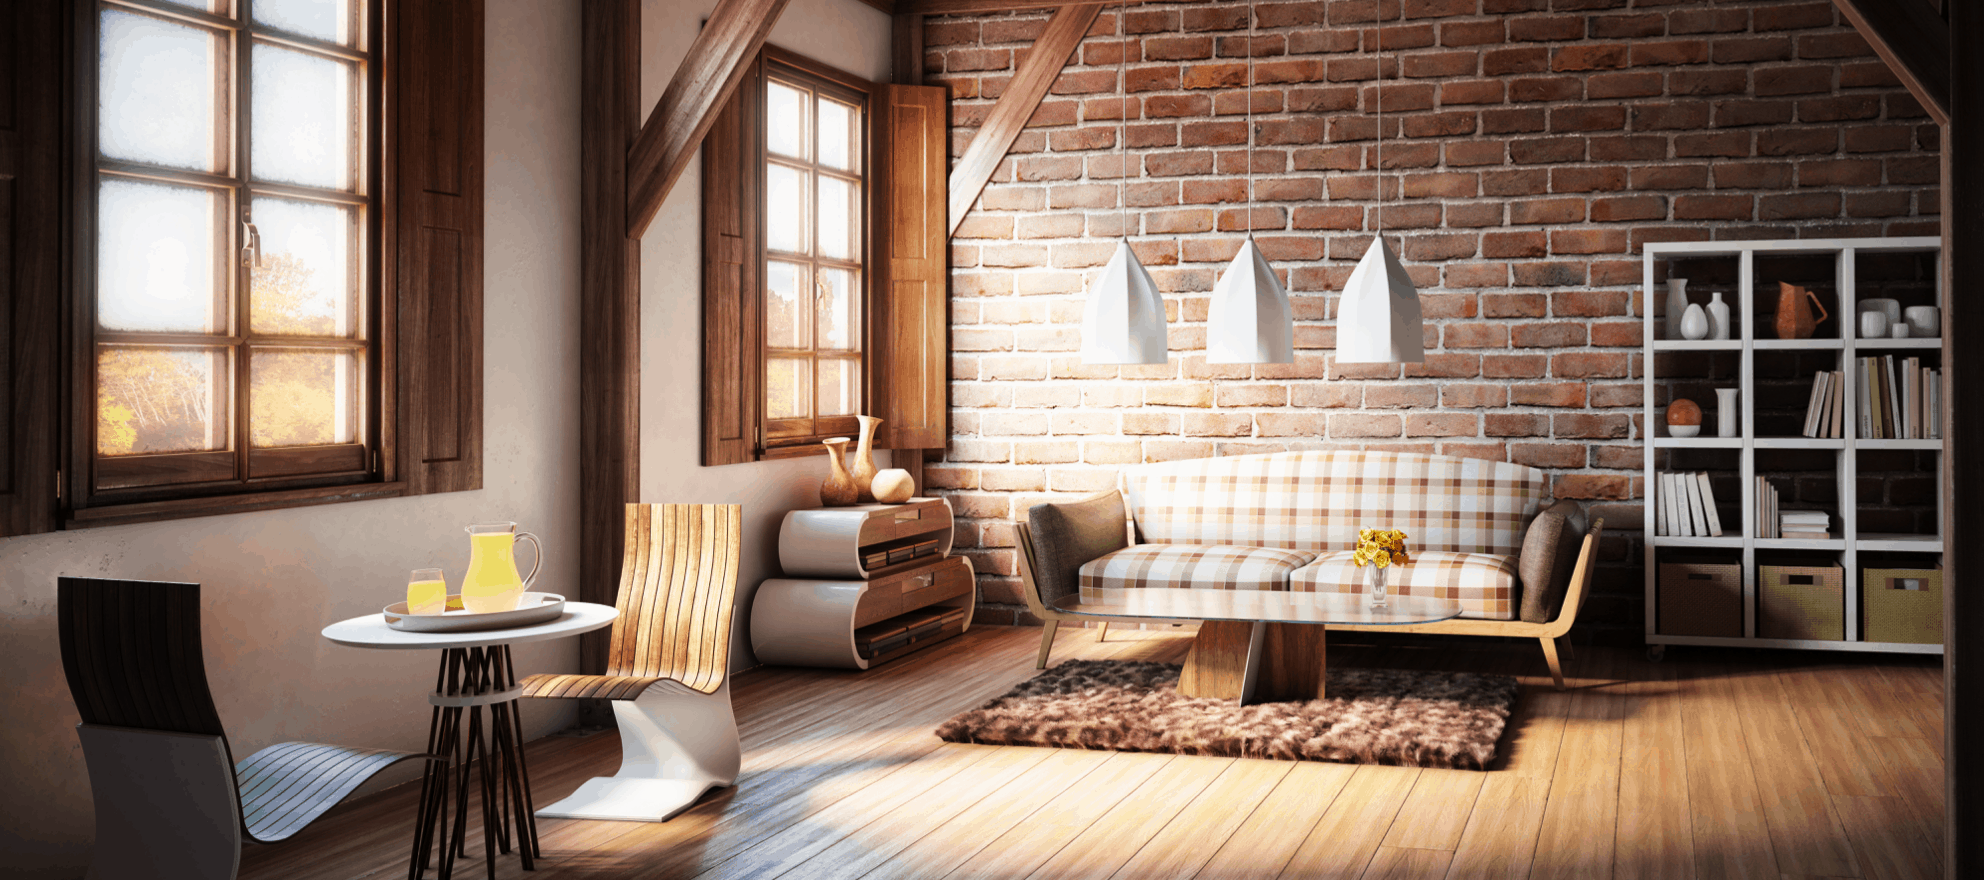 Youll Fall In Love With These 5 Home Design Trends For Autumn